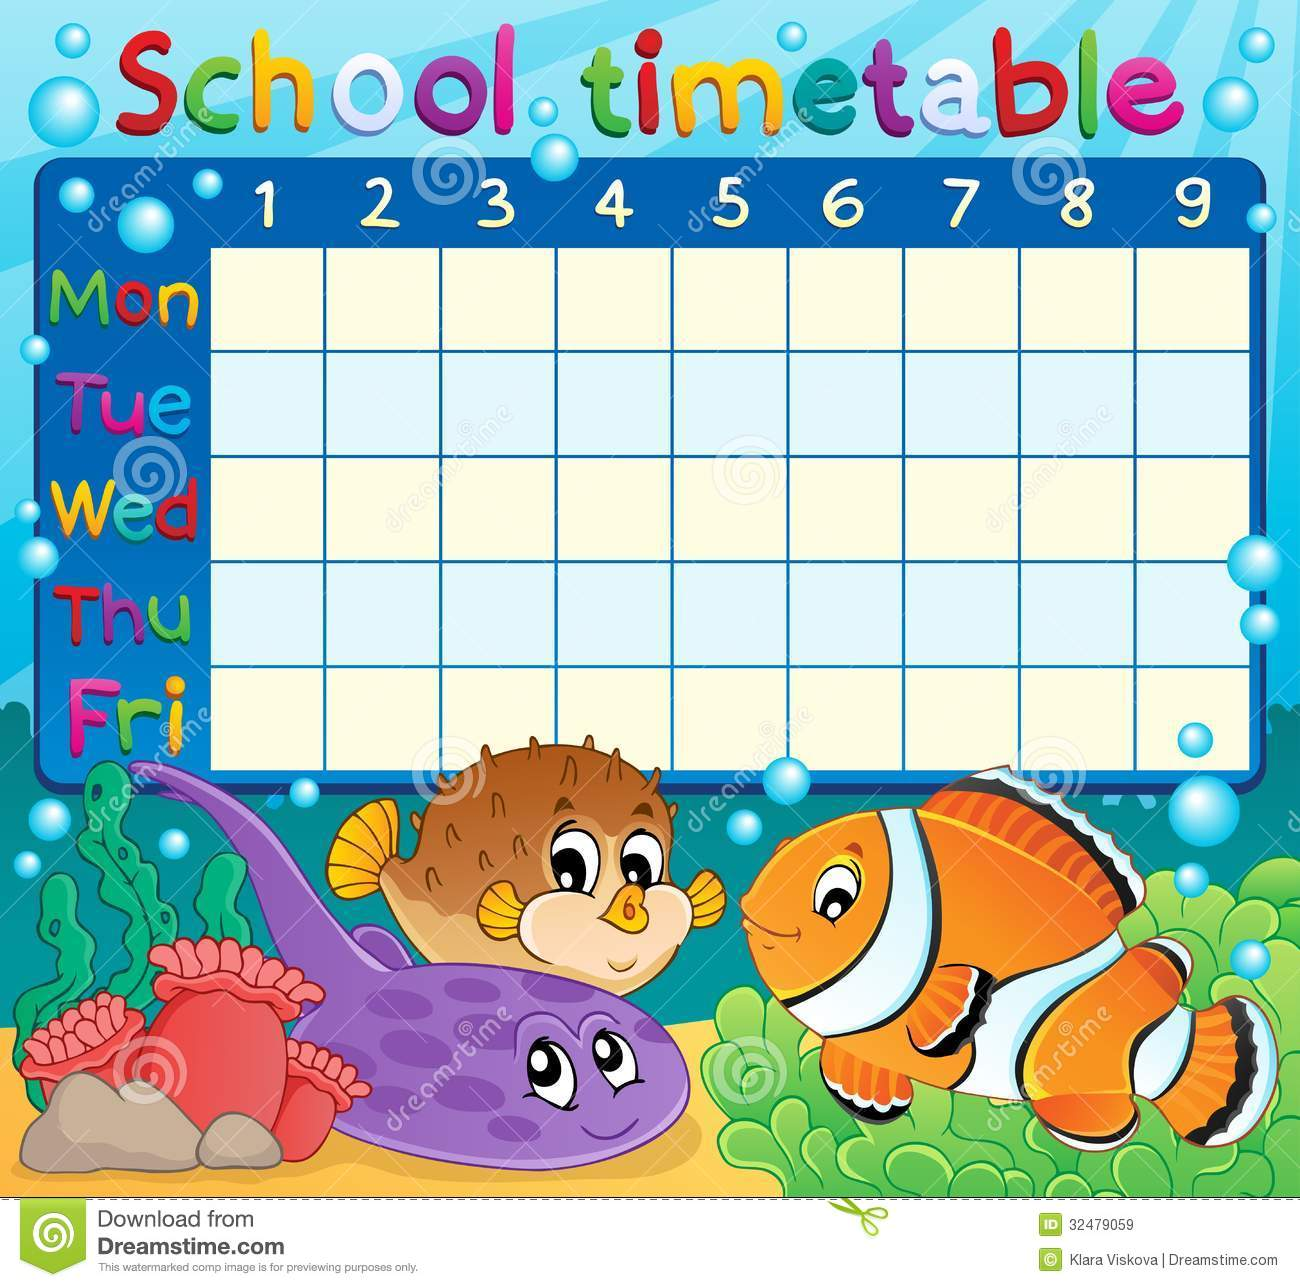 school timetable theme image 6 stock vector image 32479059